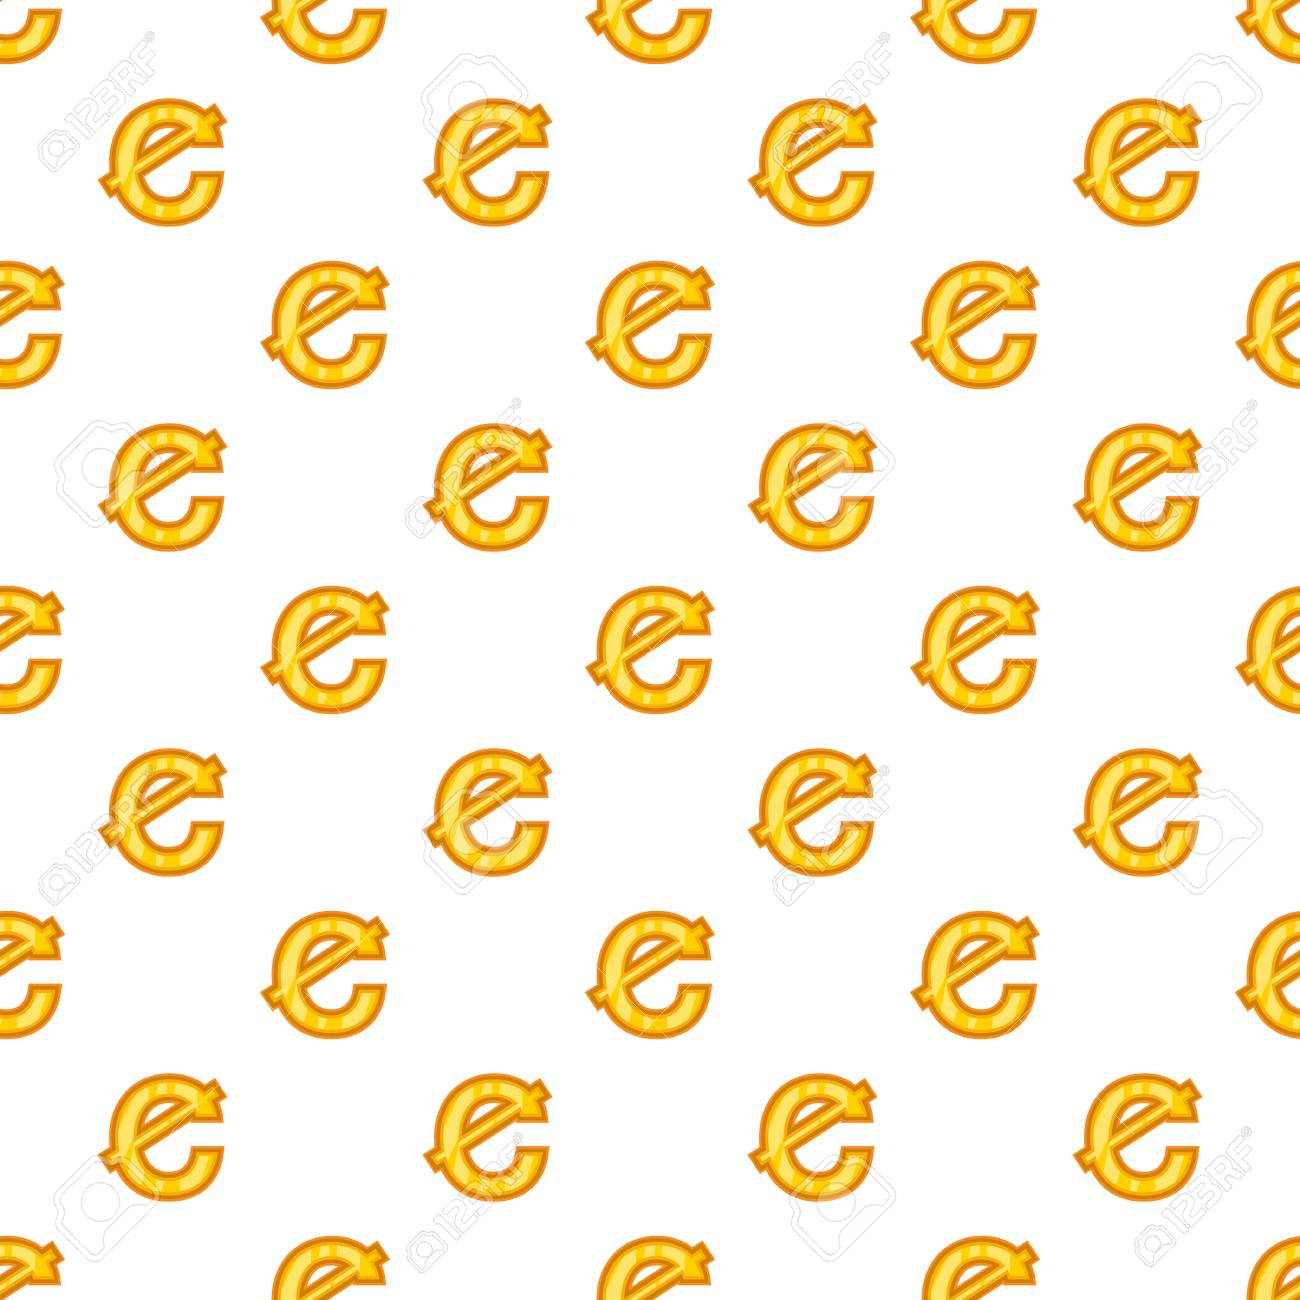 Cent Currency Symbol Pattern Cartoon Illustration Of Cent Currency